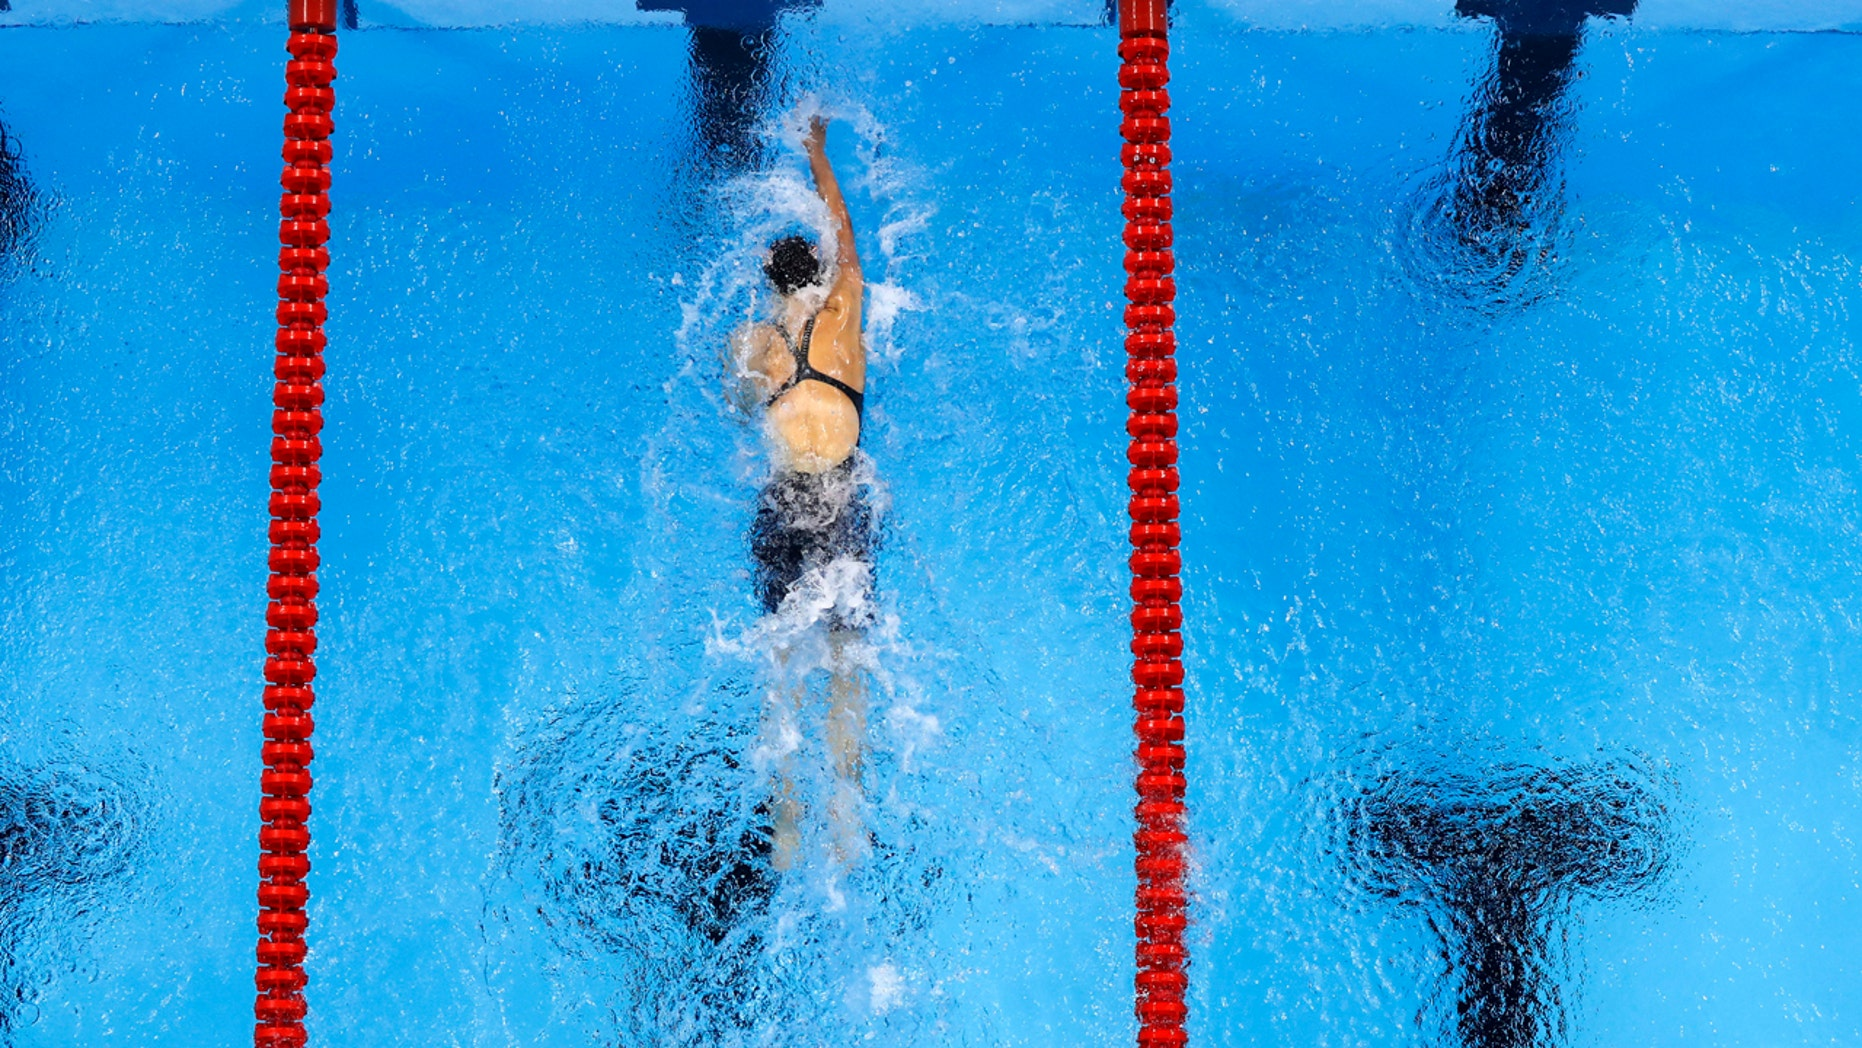 Aug. 12, 2016: United States' Katie Ledecky heads to the wall for a world record in the 800 meter freestyle finals during the swimming competitions at the 2016 Summer Olympics in Rio de Janeiro, Brazil.